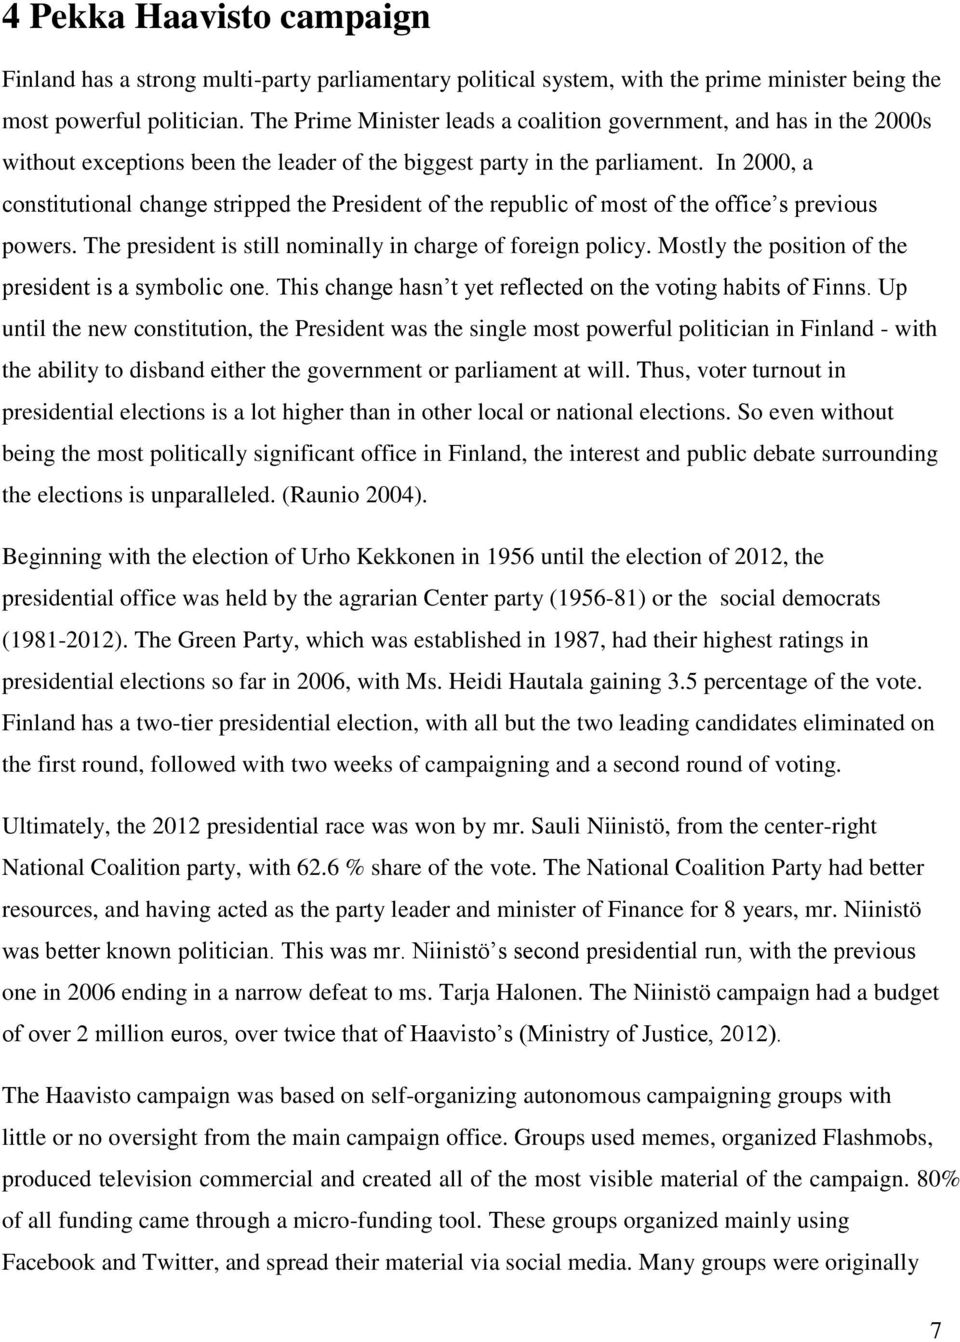 Crowdsourcing & Crowdfunding a Presidential Election - PDF